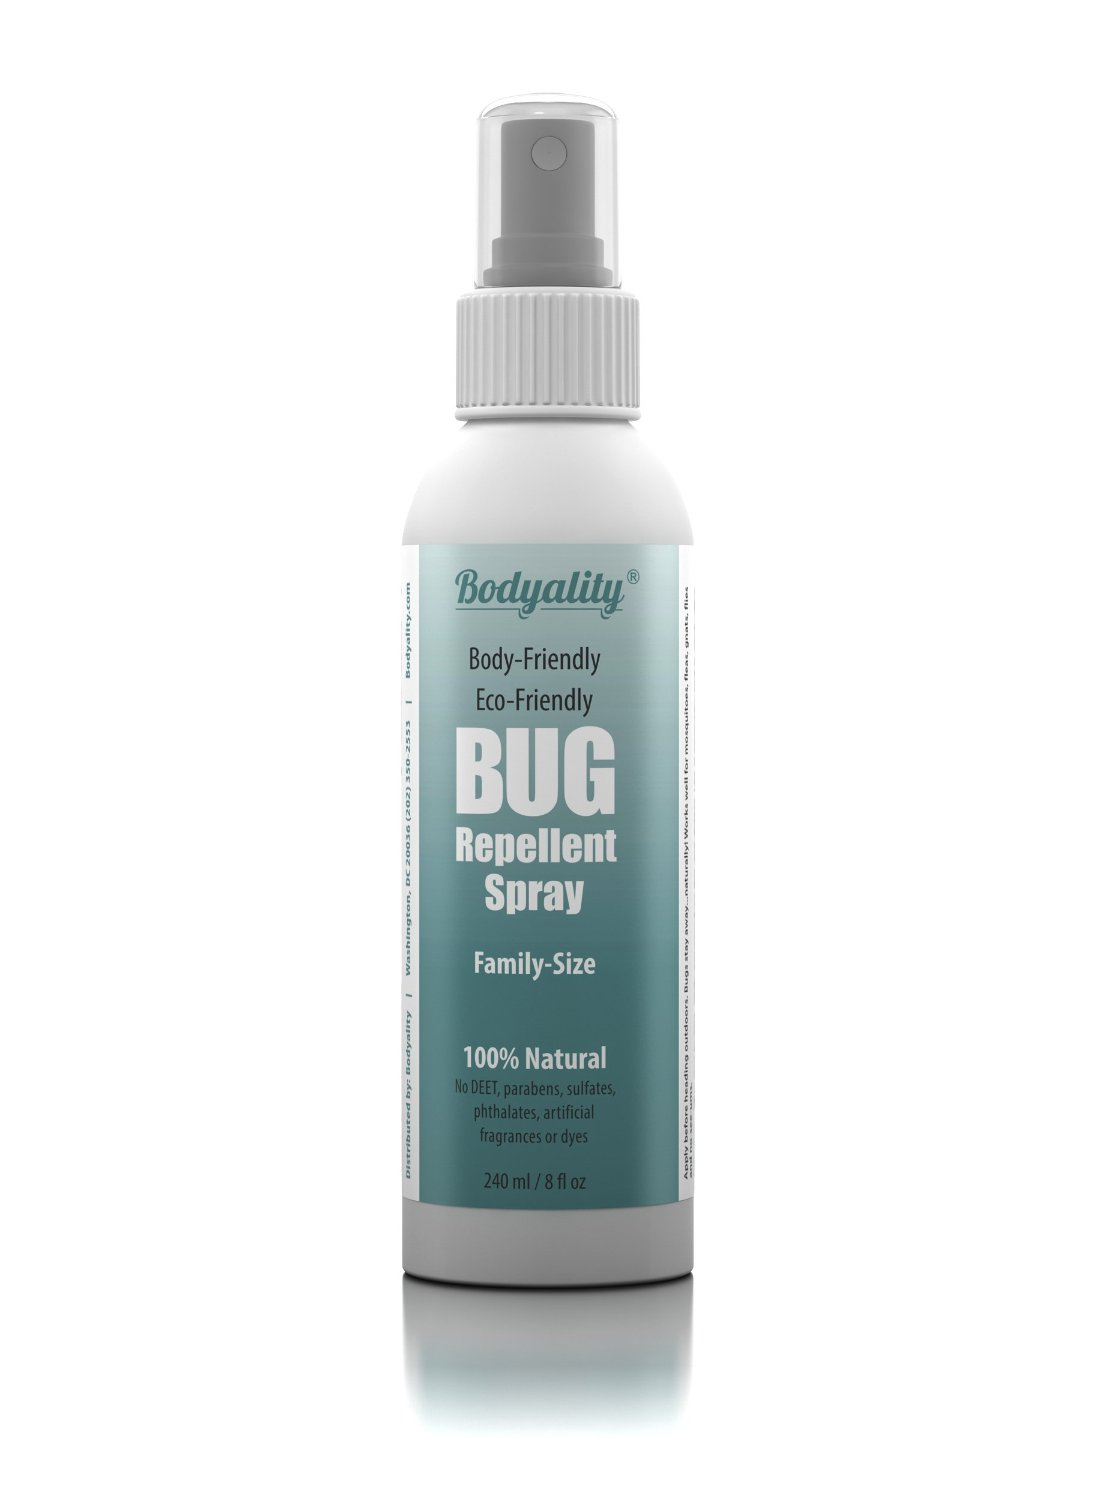 Bodyability Pest Repelling Spray